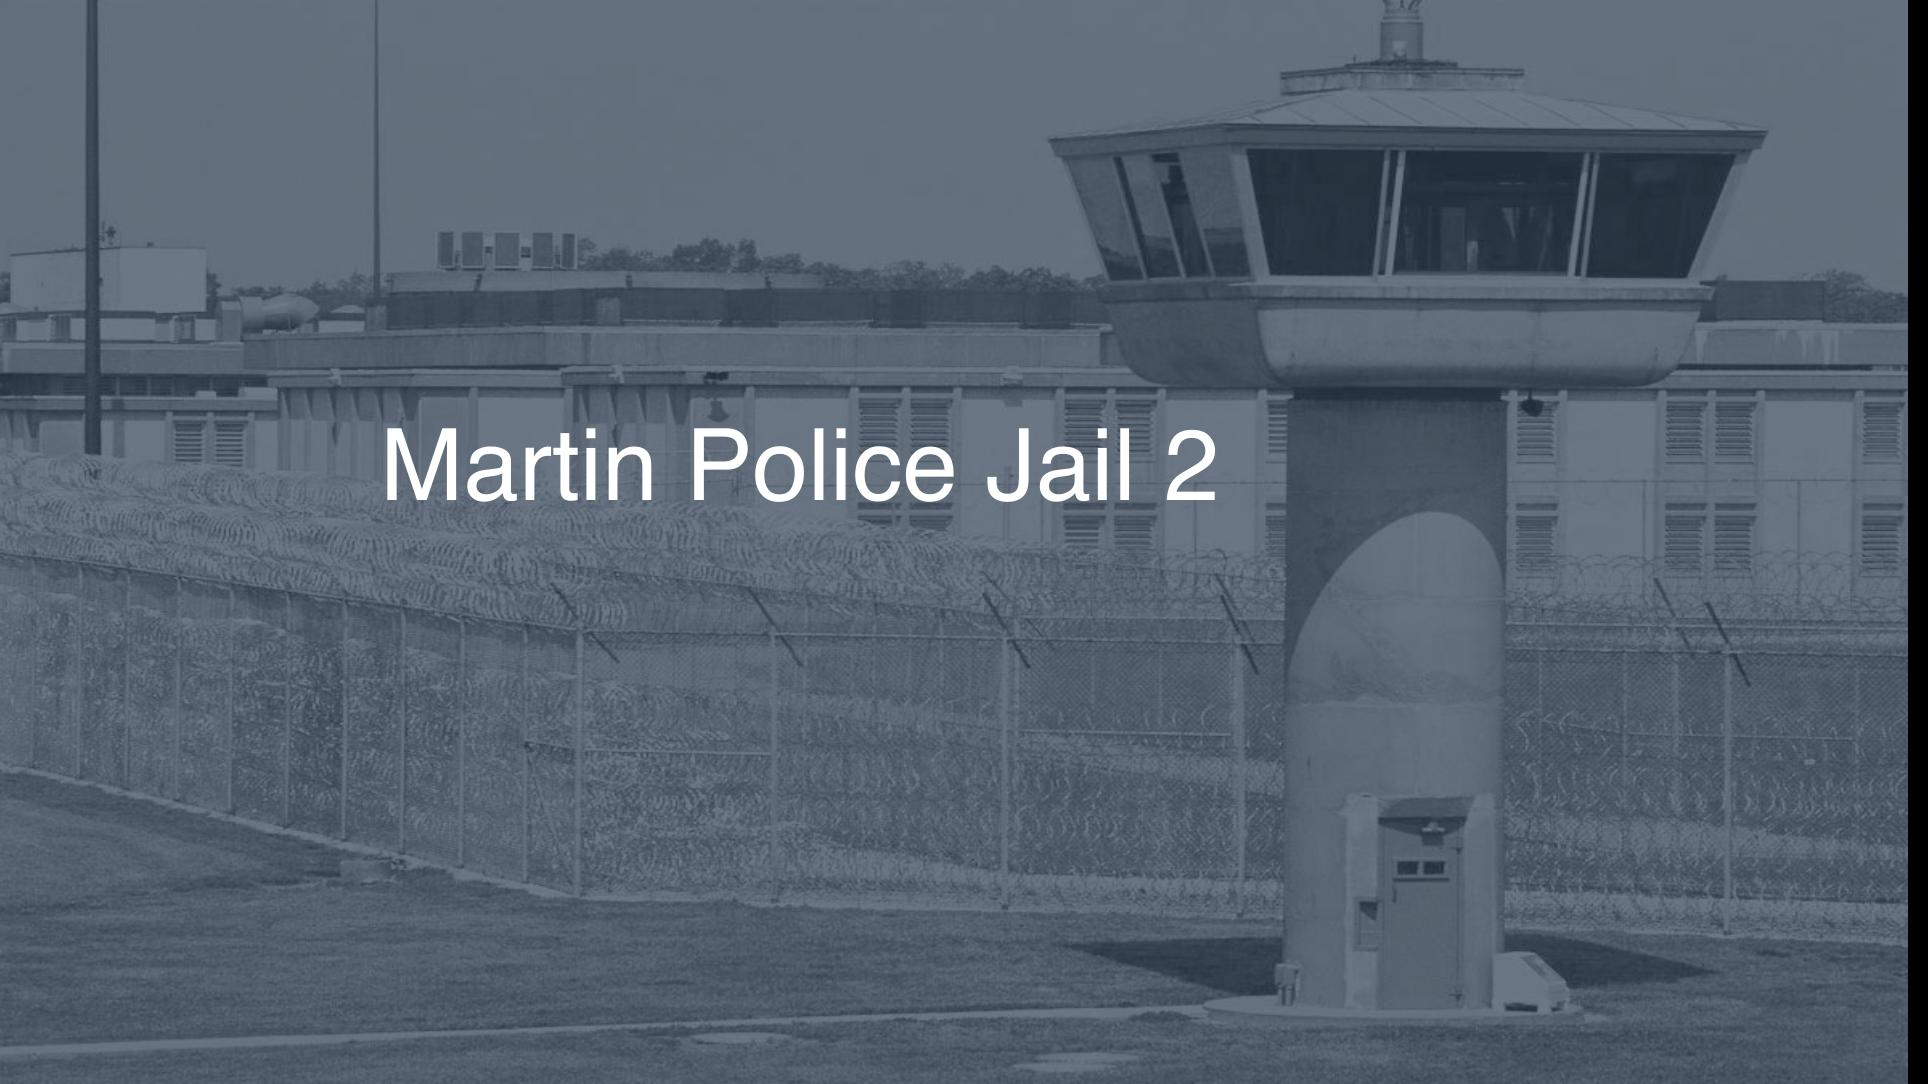 Martin Police Jail correctional facility picture